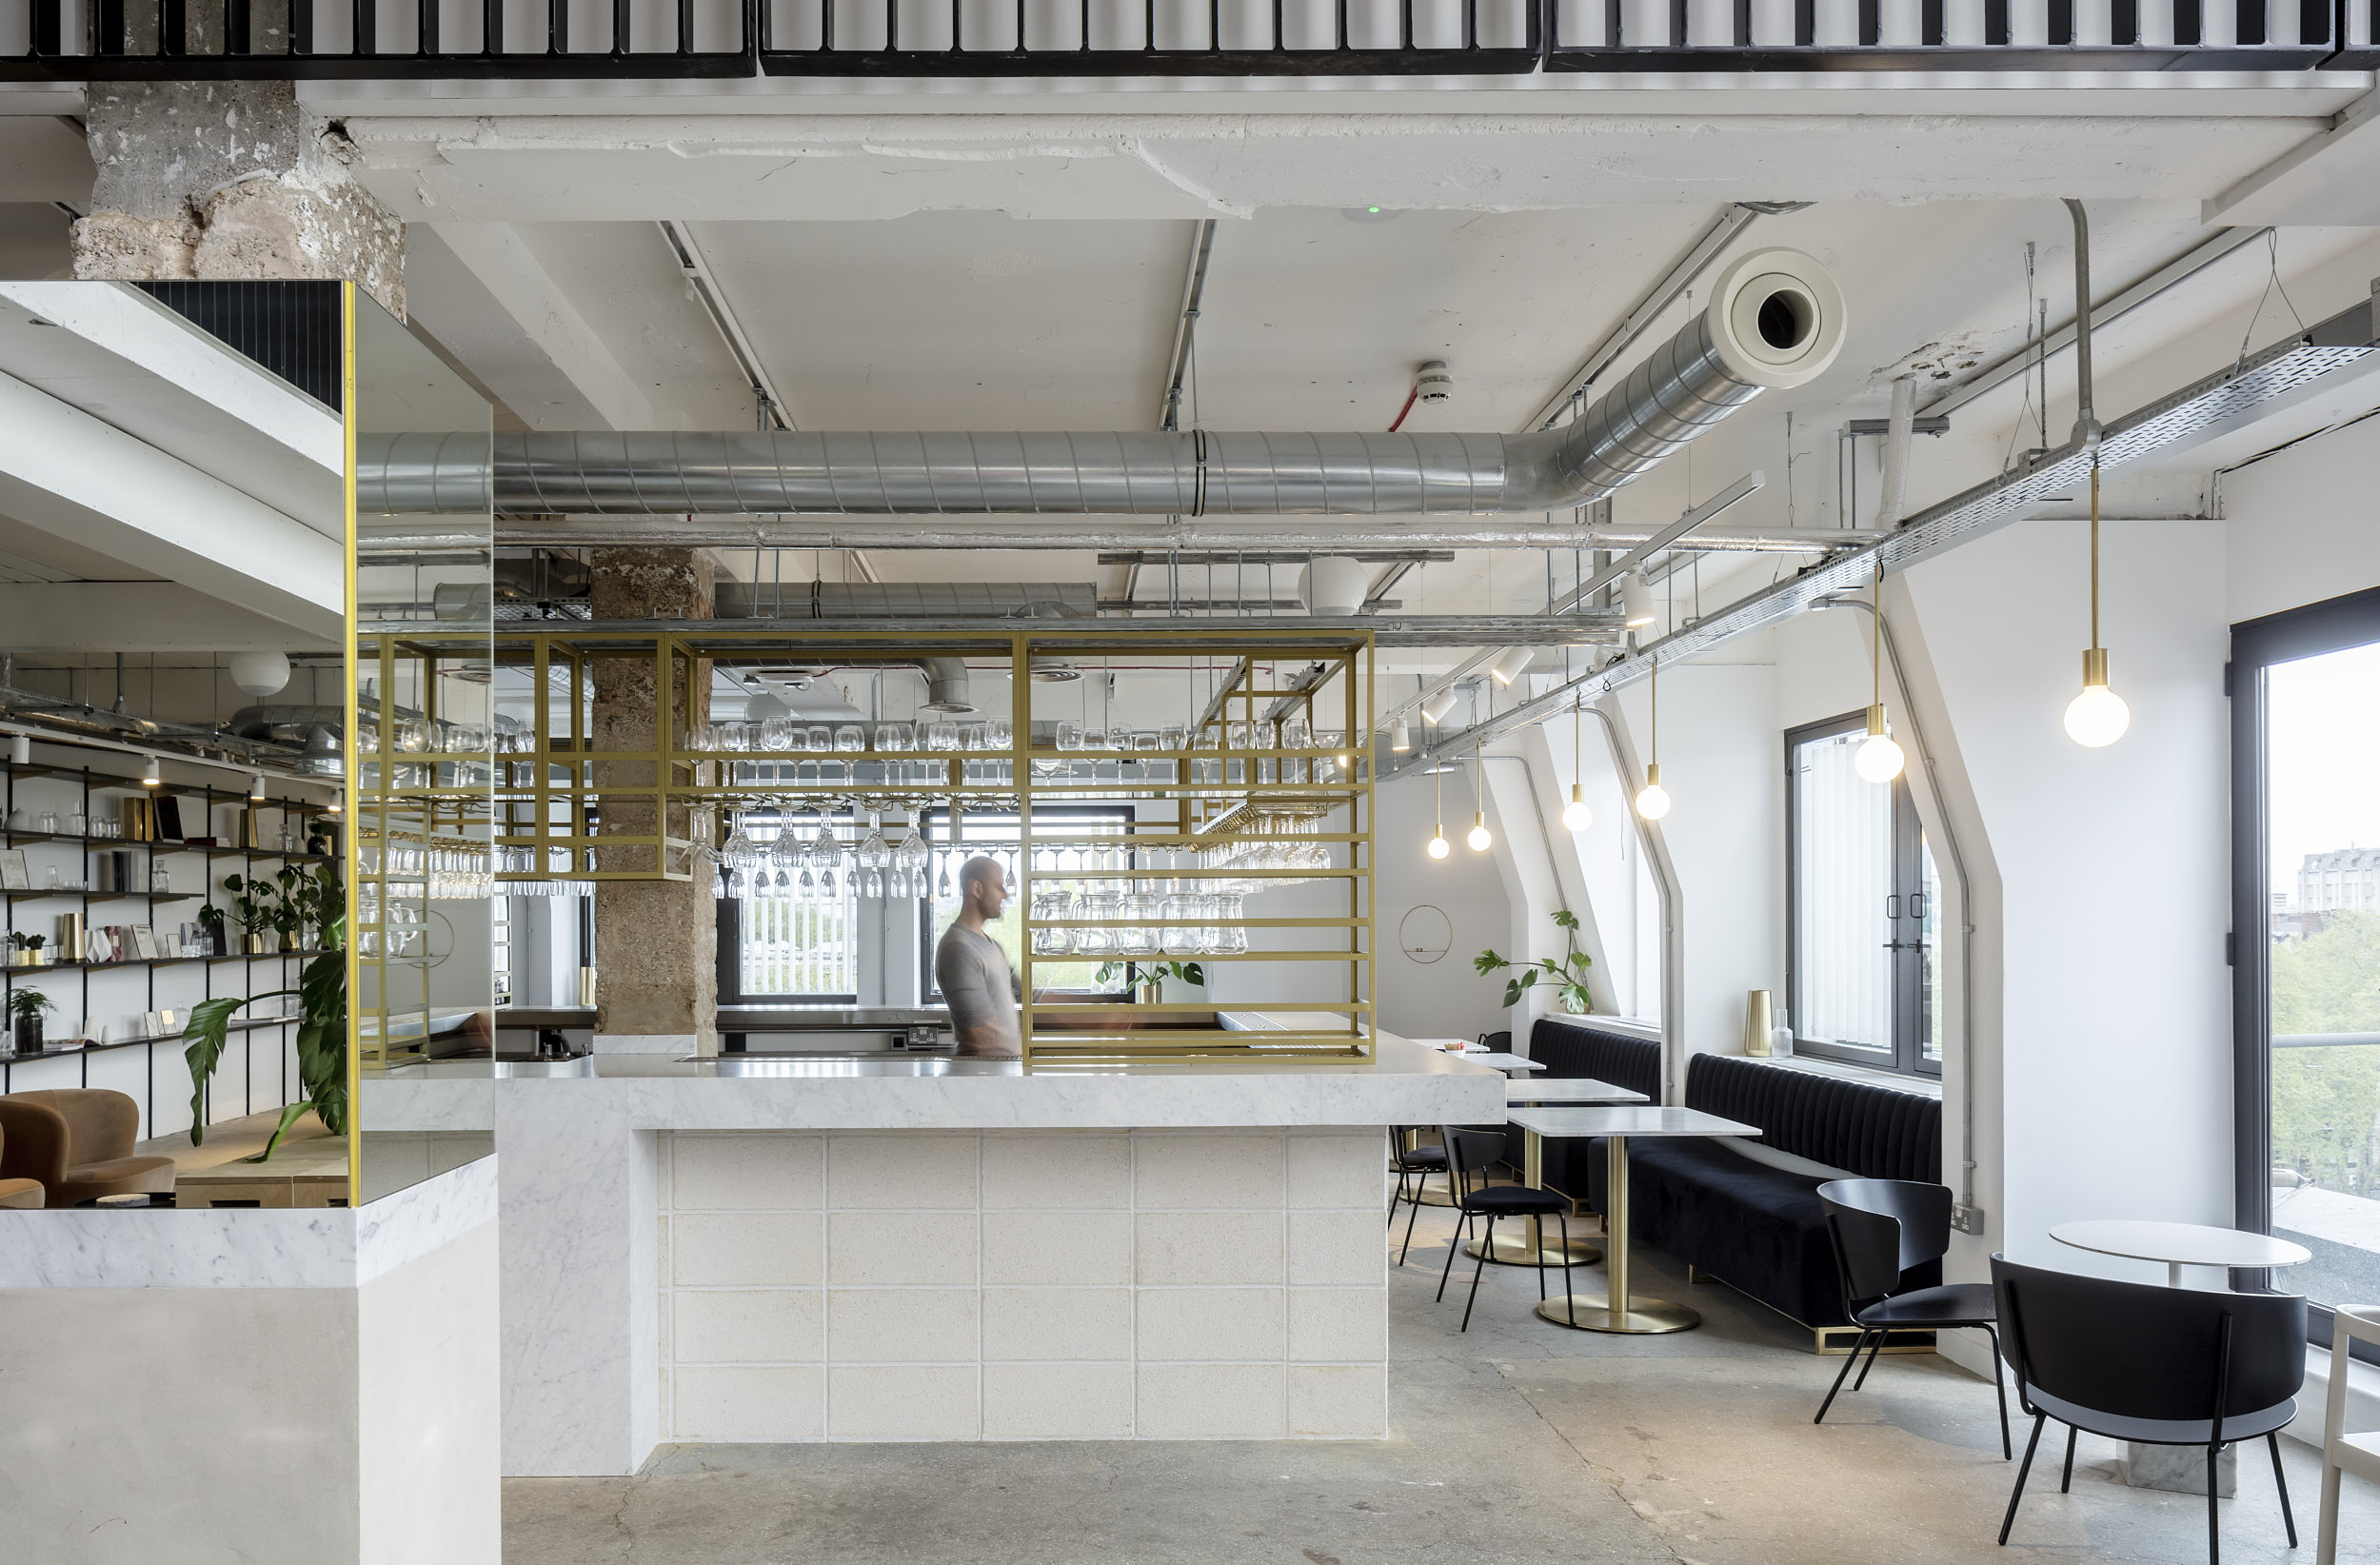 Interior photography showing the new bar at LABS, Holborn, London.